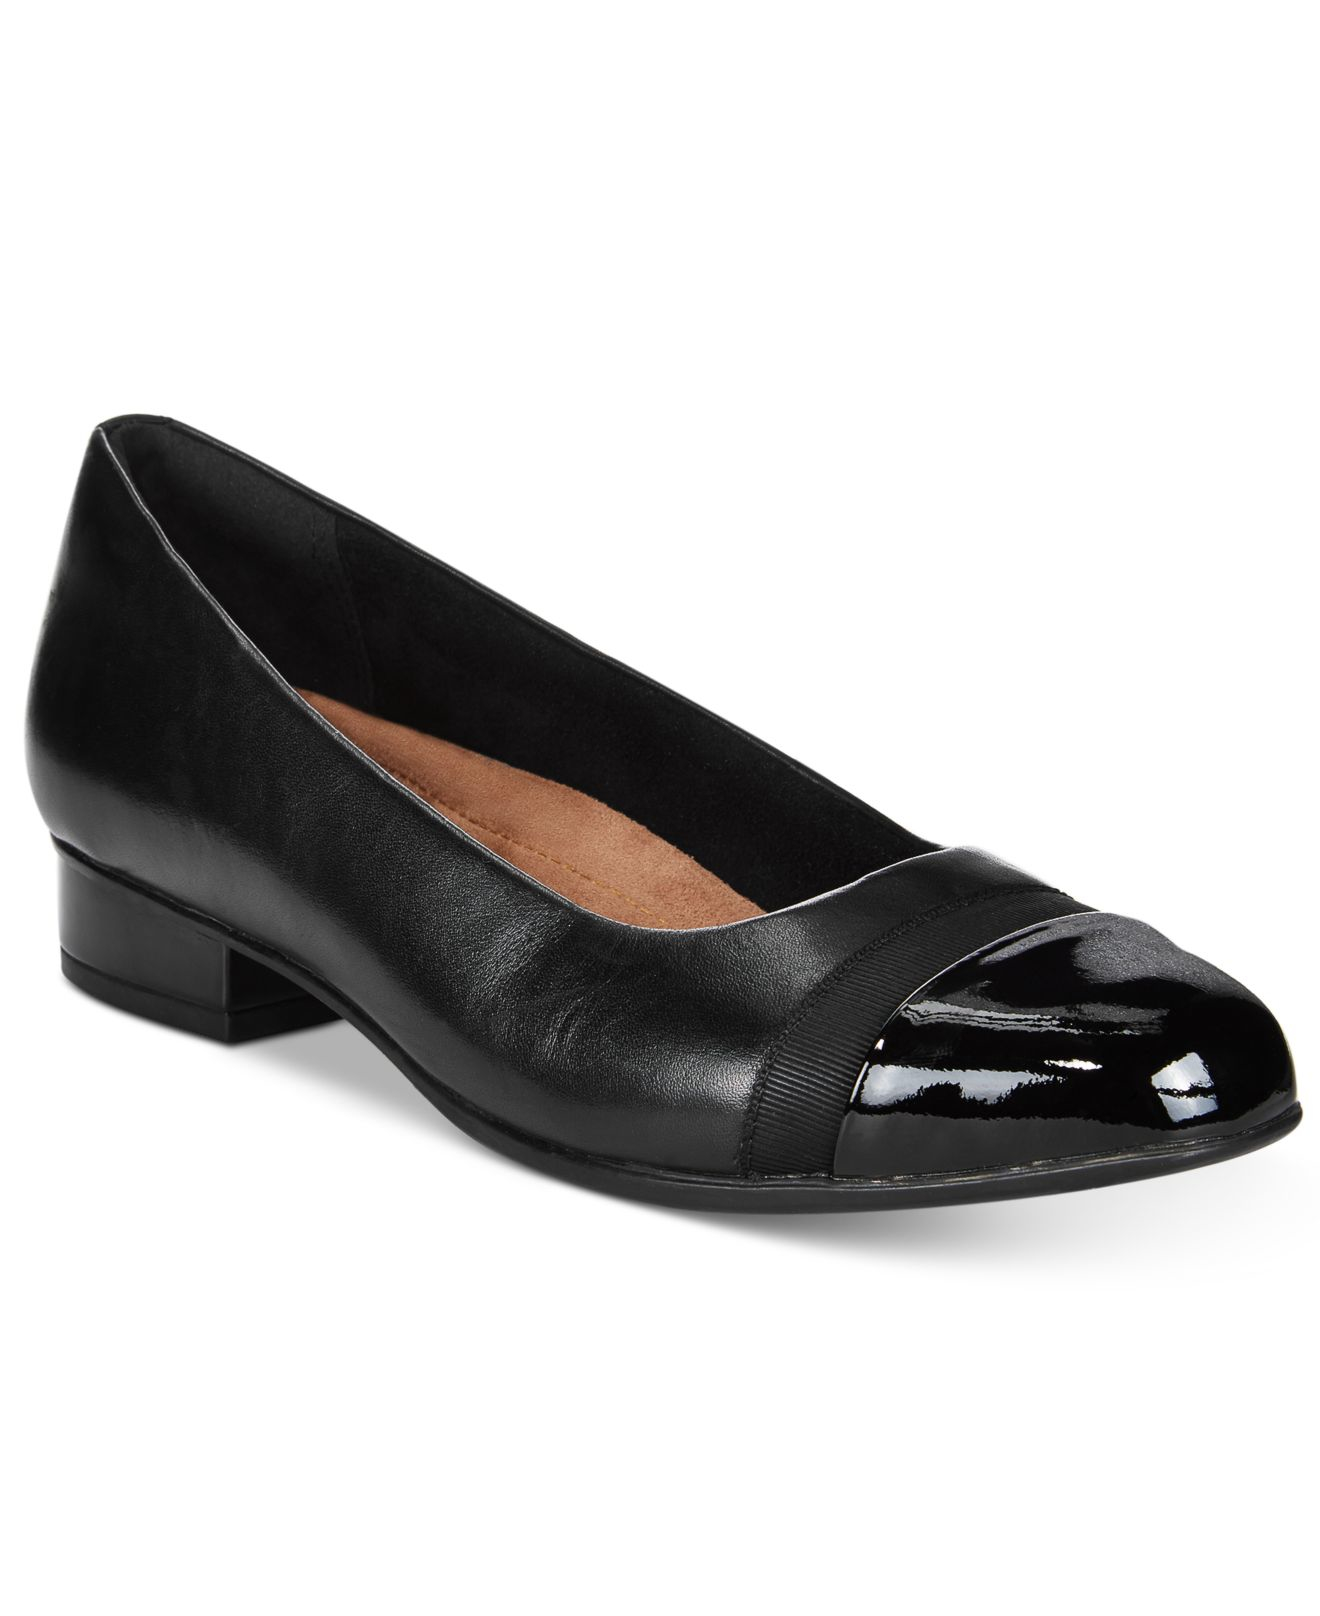 wide womens get dressed footwear pumps